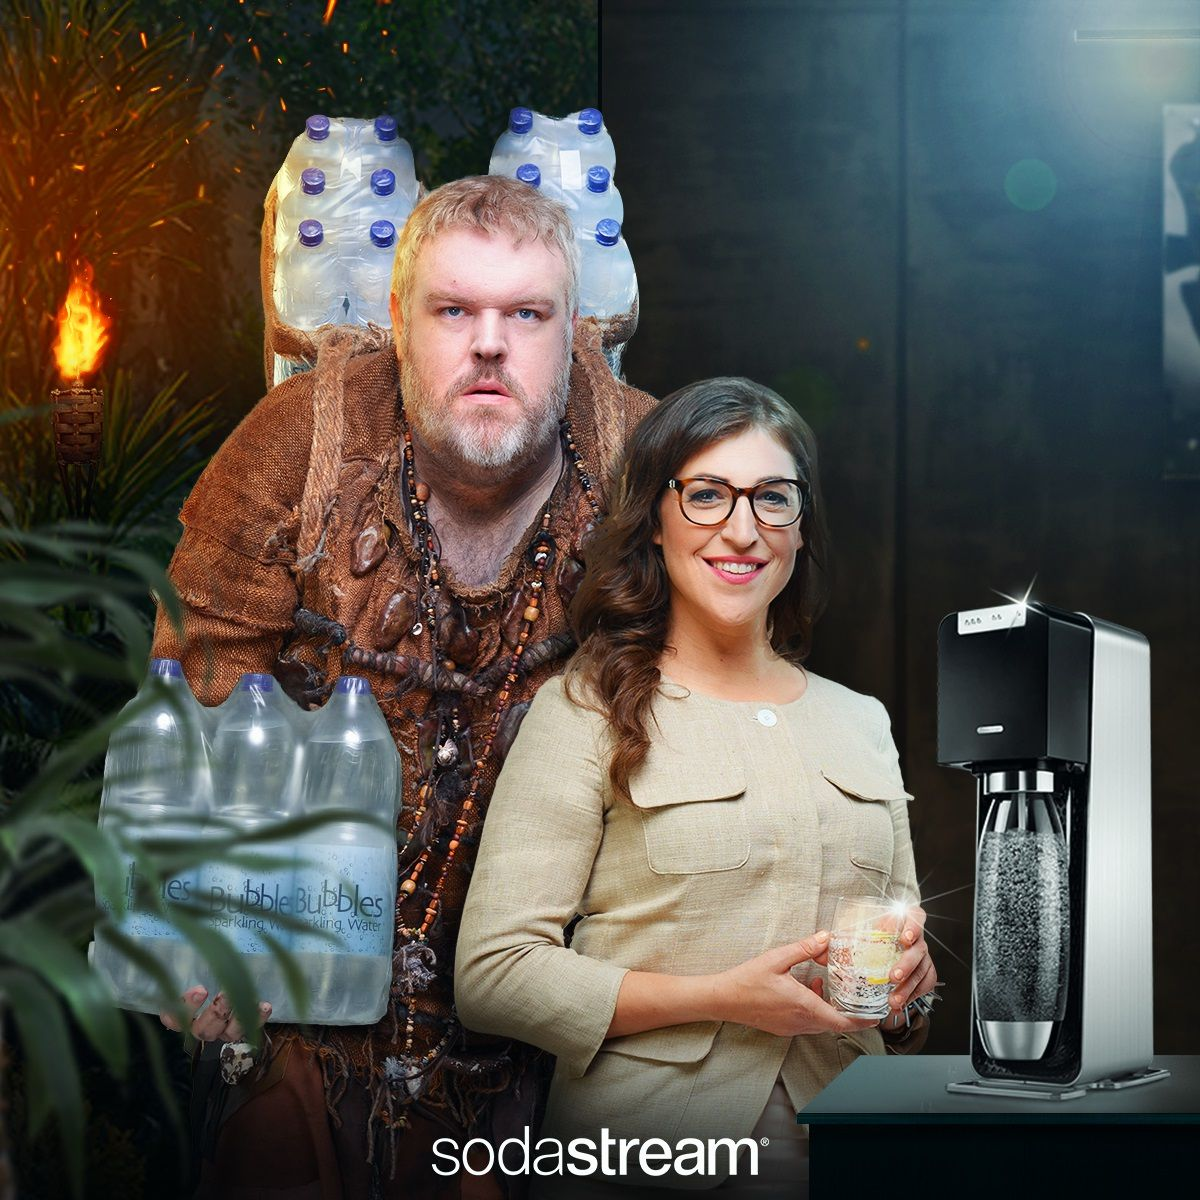 Sodastream Campaign Highlights 'primitive' Use Of Plastic Bottles photo